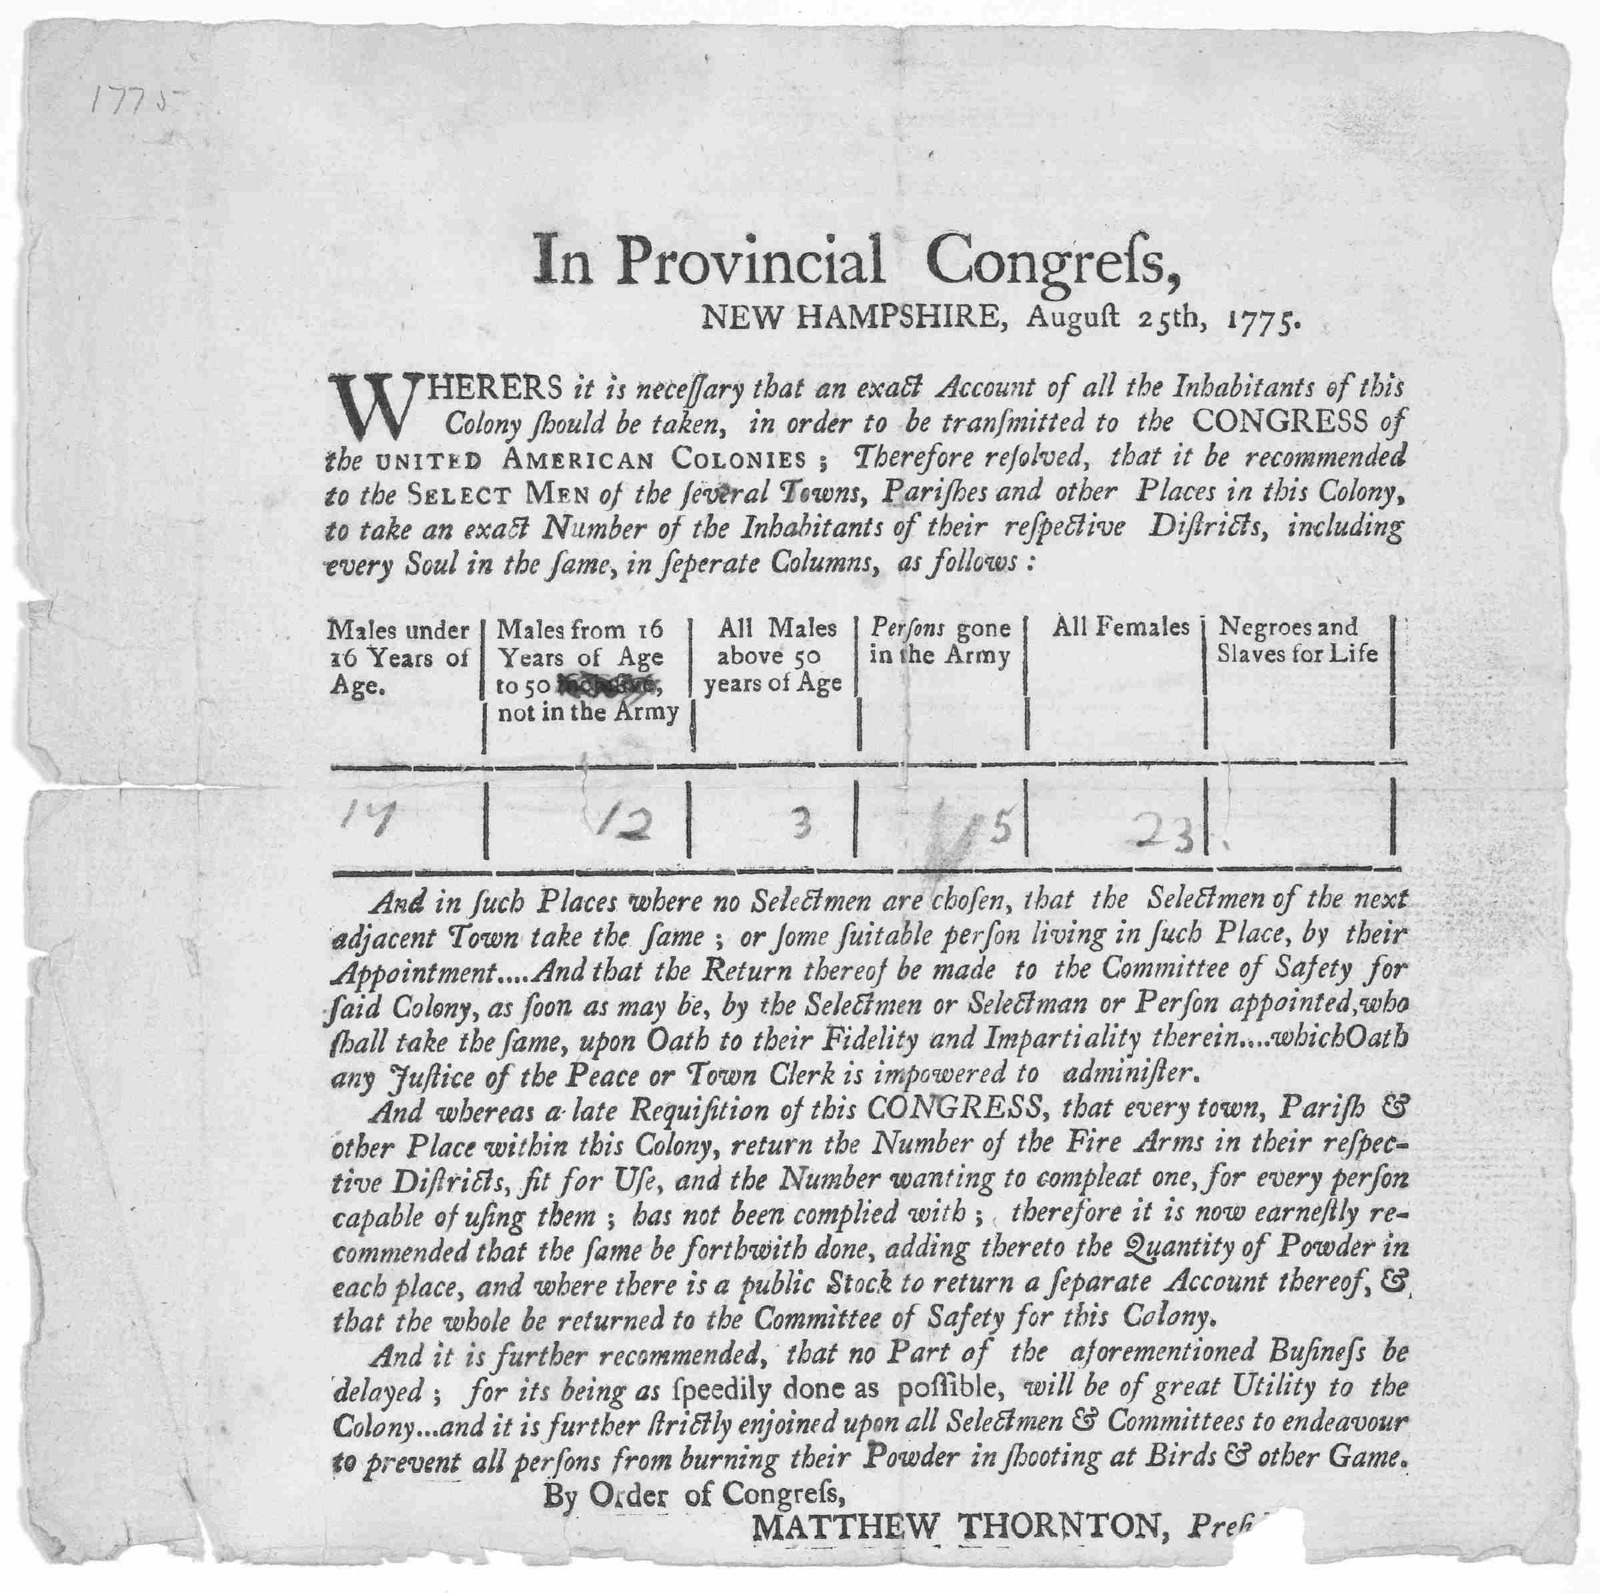 In Provincial congress. New Hampshire, August 25th 1775. Whereas it is necessary that an exact account of all the inhabitants of this Colony should be taken, in order to be transmitted to the Congress of the United American colonies; therefore r